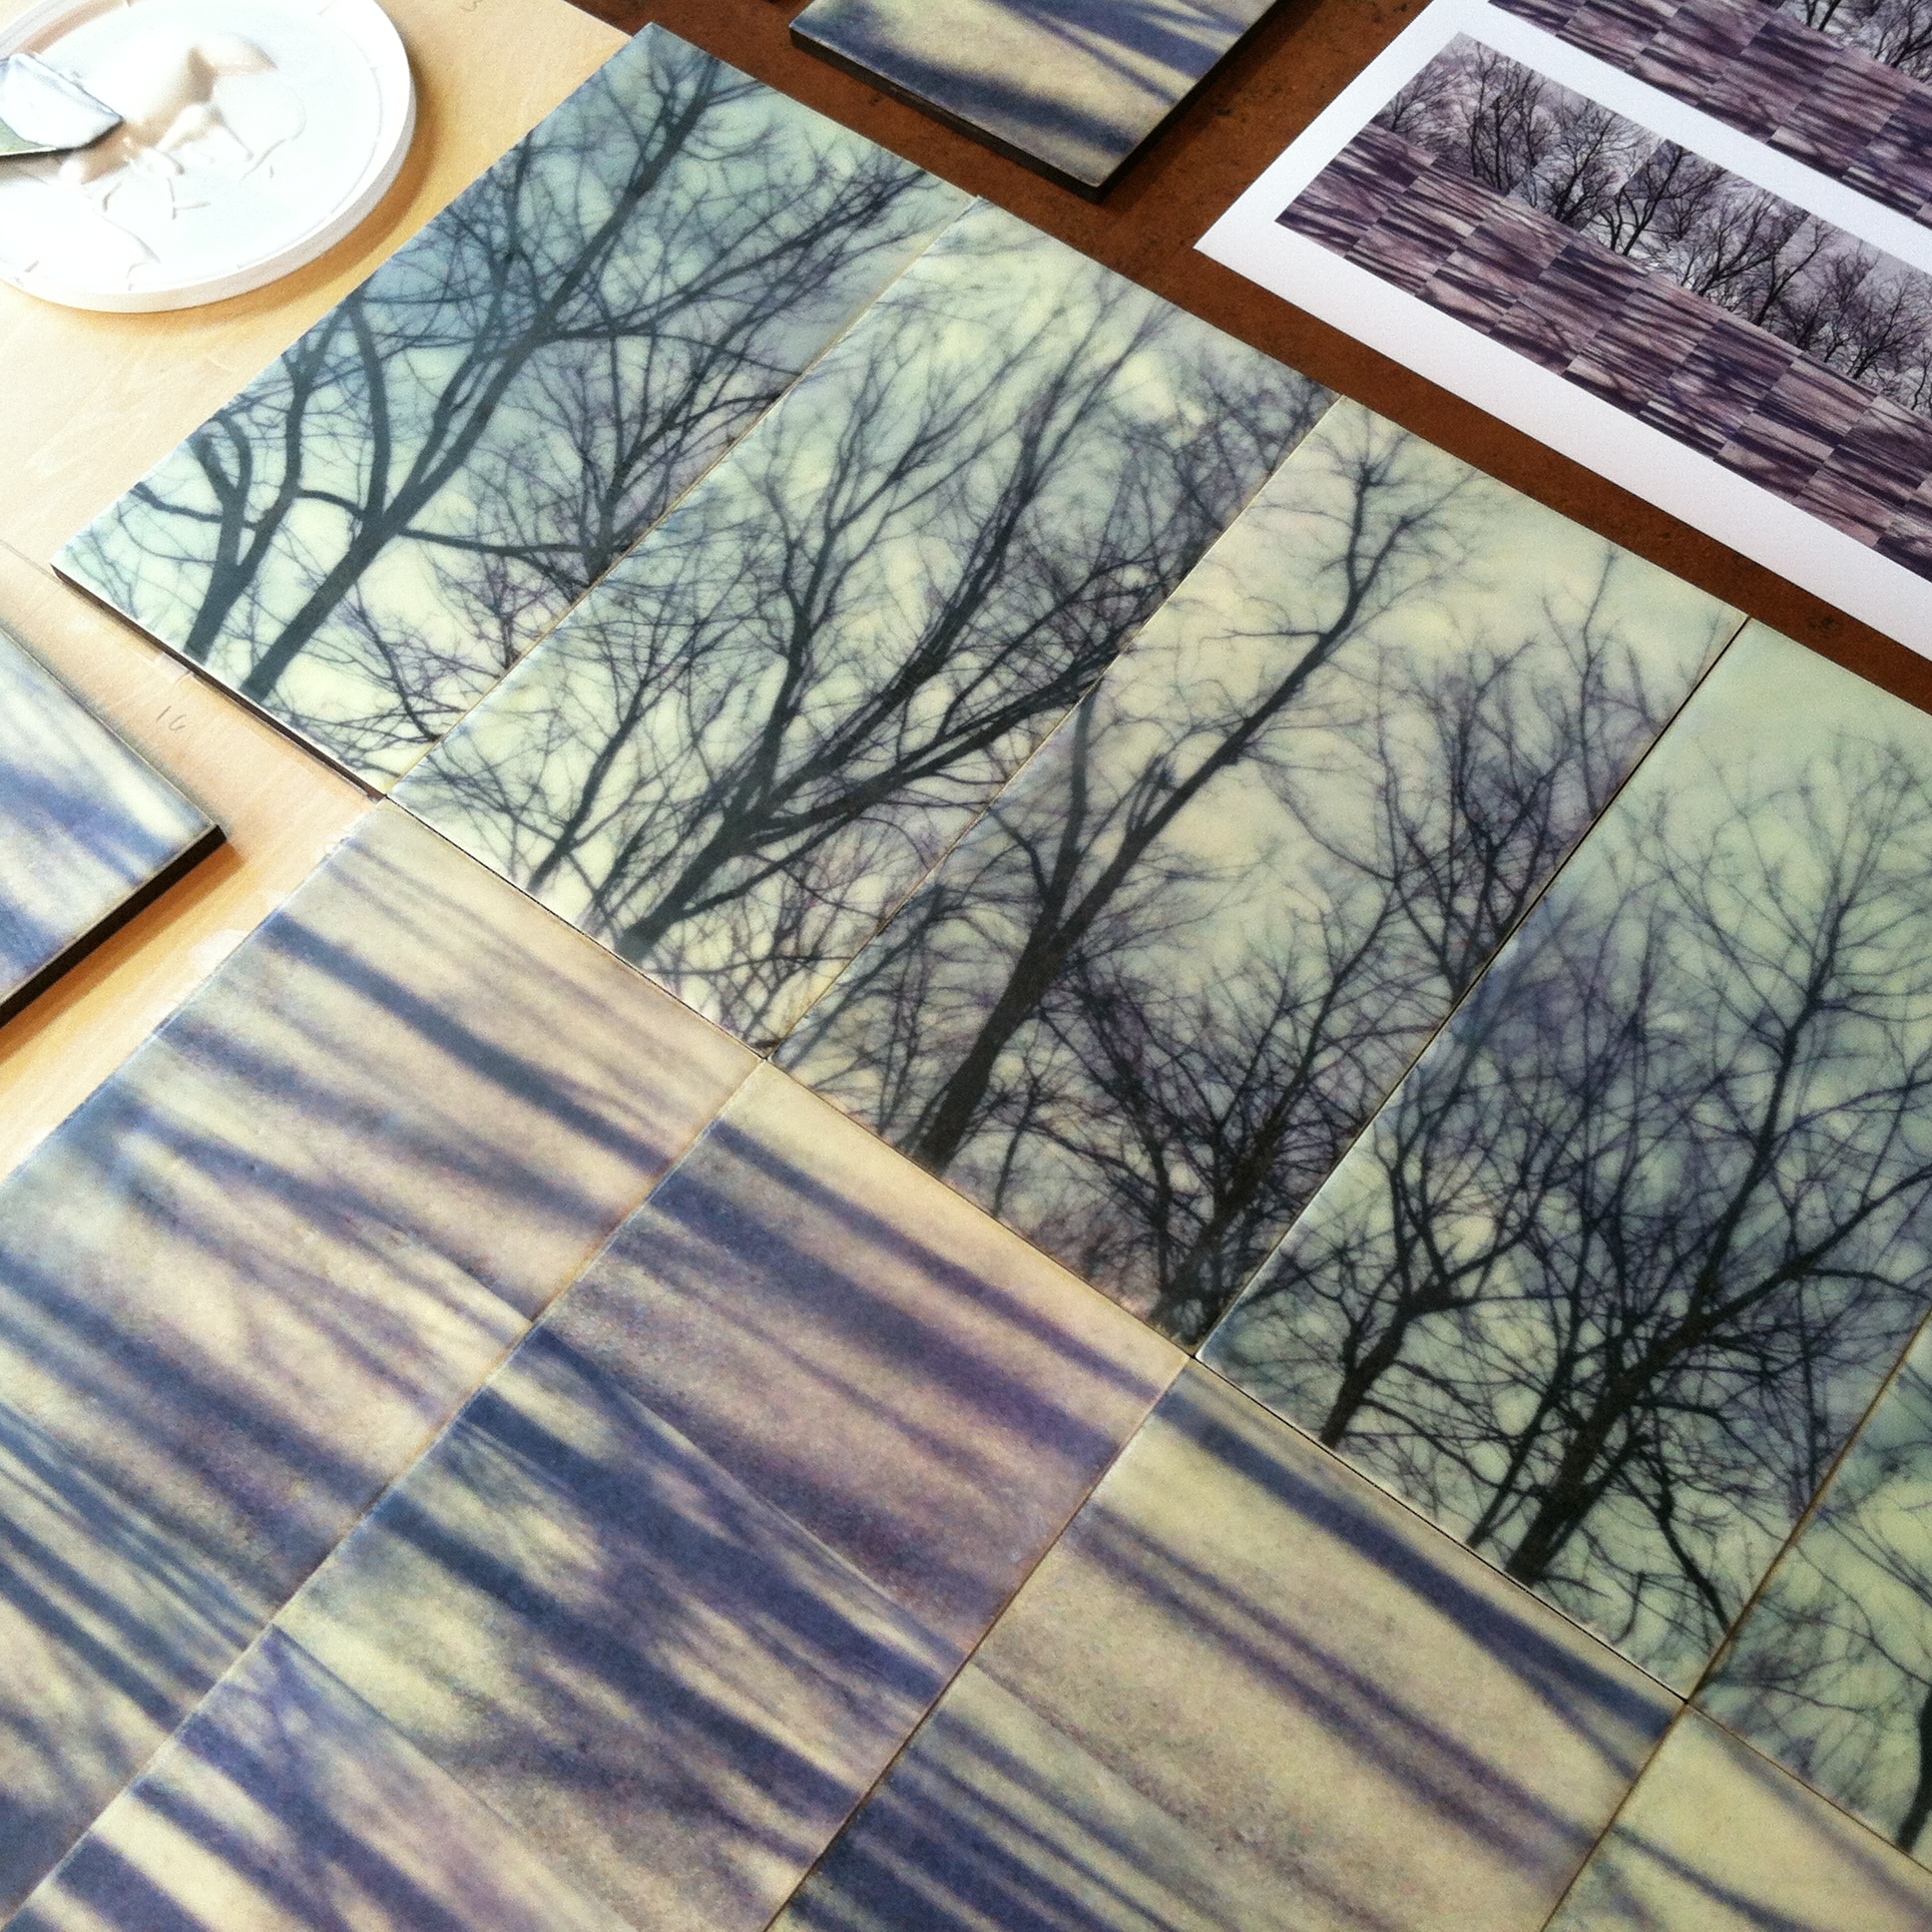 Poetic Passage by Erin Keane : photography with encaustic beeswax